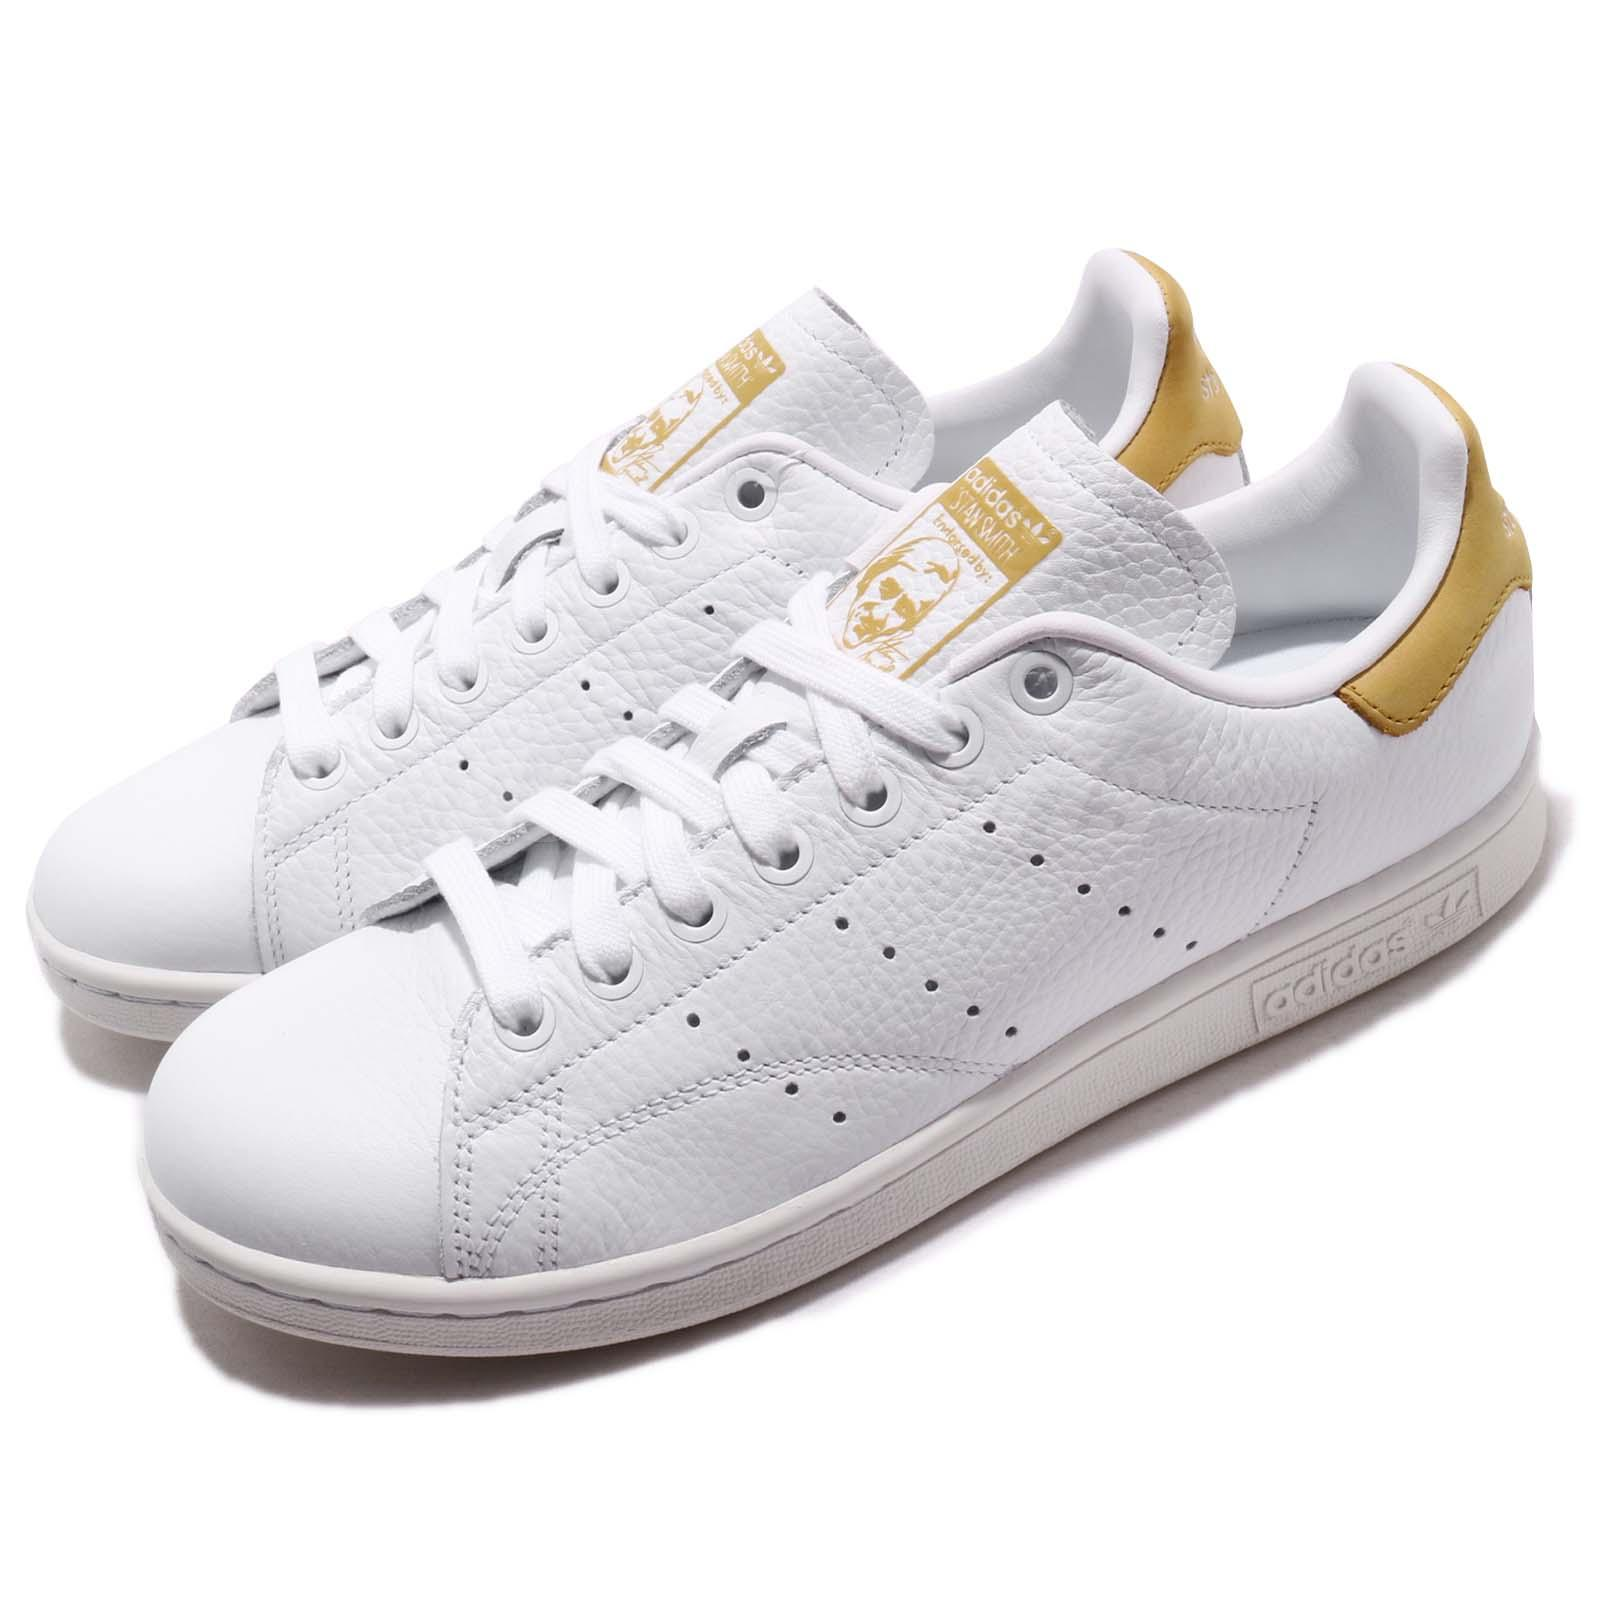 low priced ec63b 21479 Details about adidas Originals Stan Smith White Raw Ochre Men Casual Shoes  Sneakers BD7437